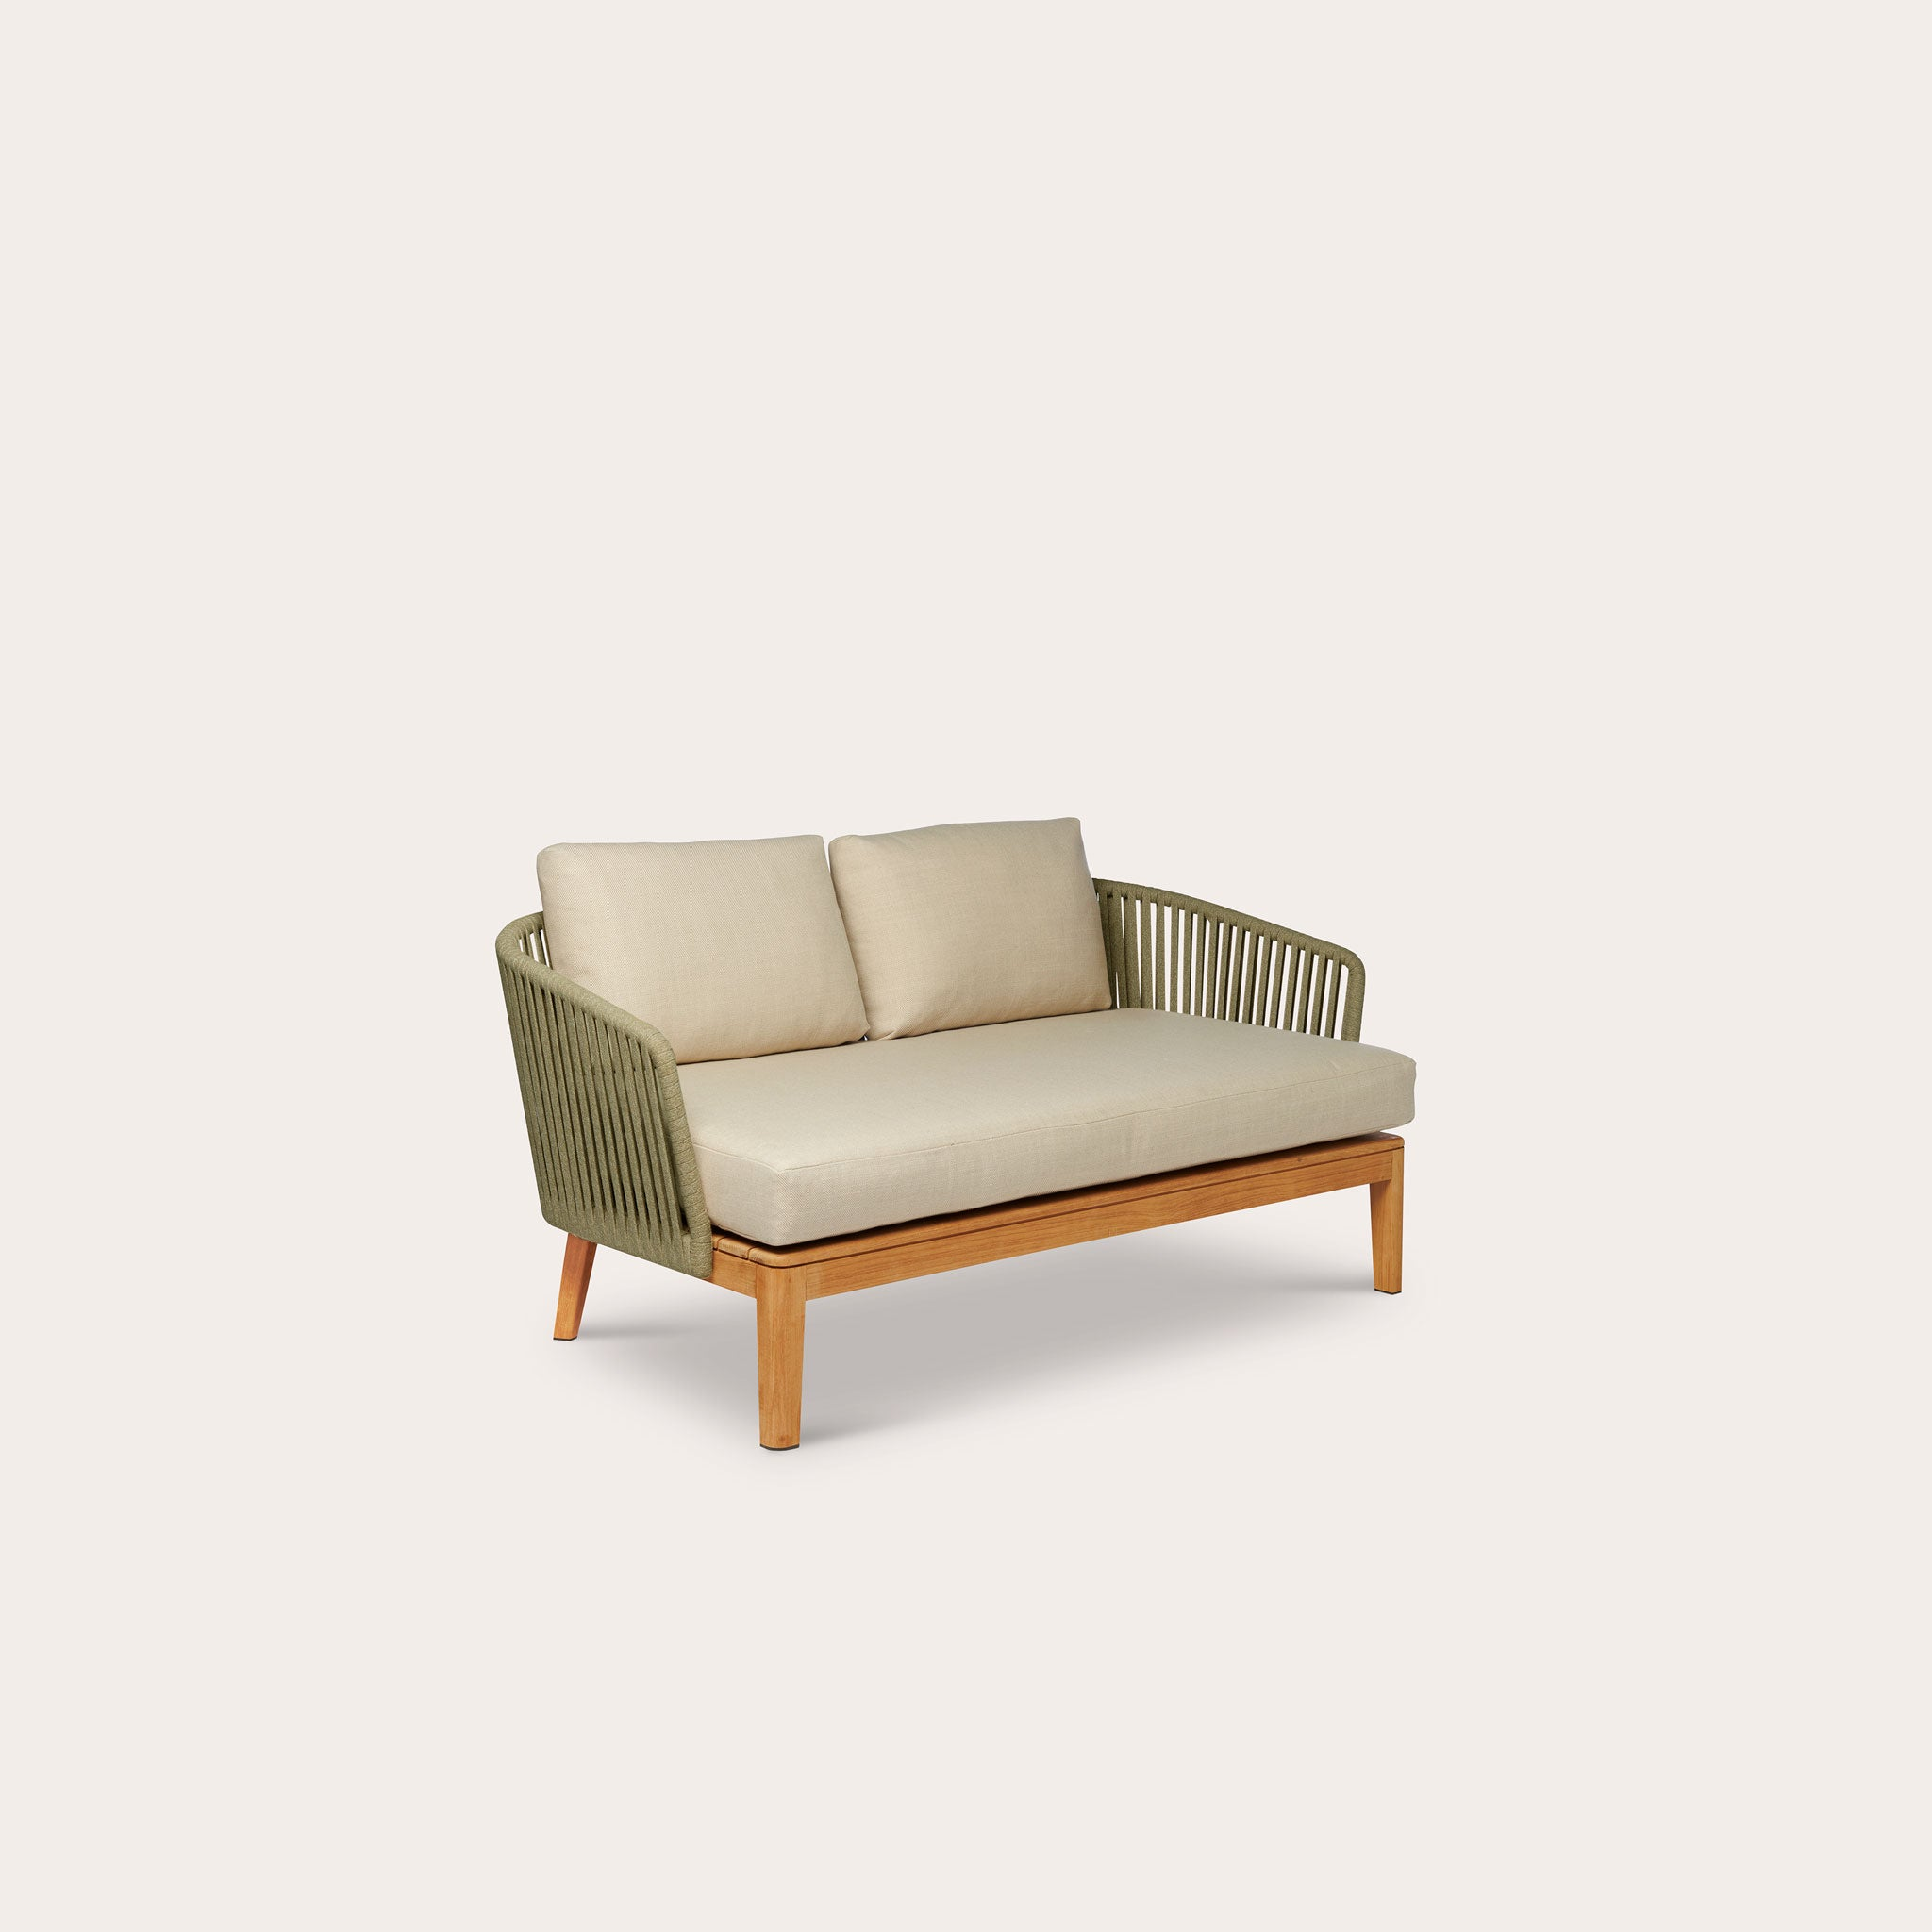 MOOD Sofa Outdoor Studio Segers Designer Furniture Sku: 007-200-11912